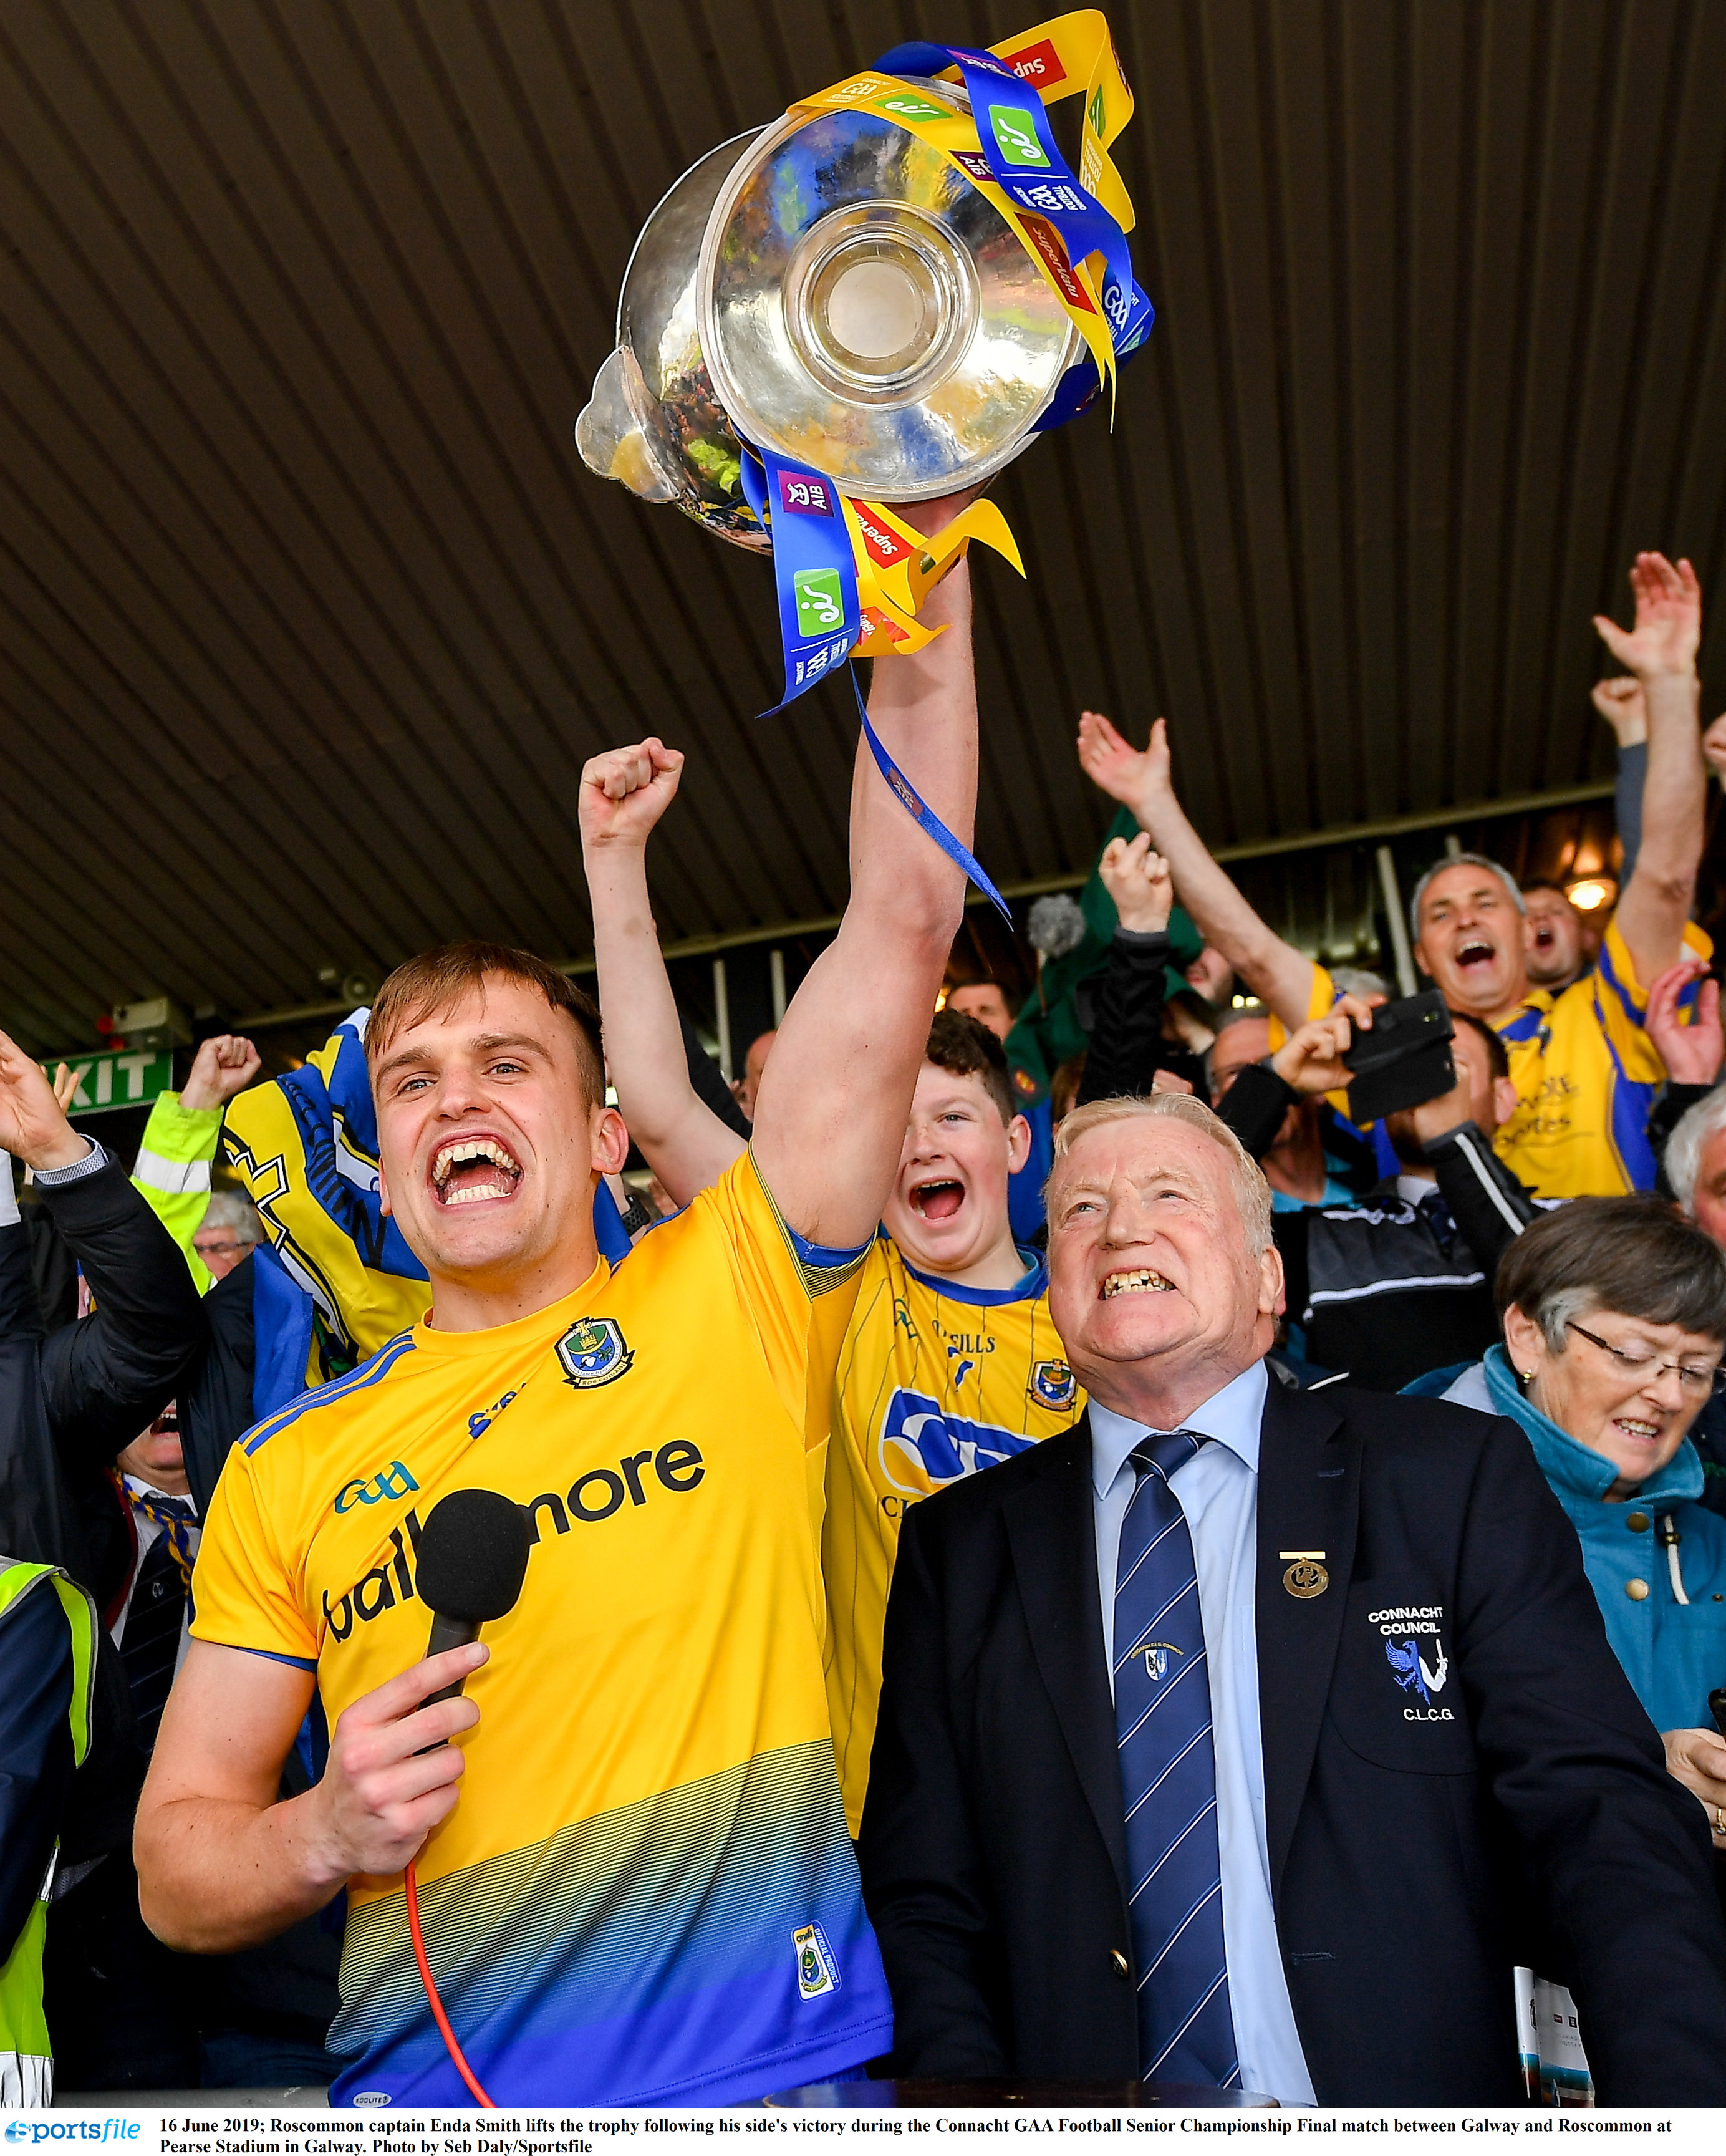 Roscommon Are 2019 Connacht SFC Champions!